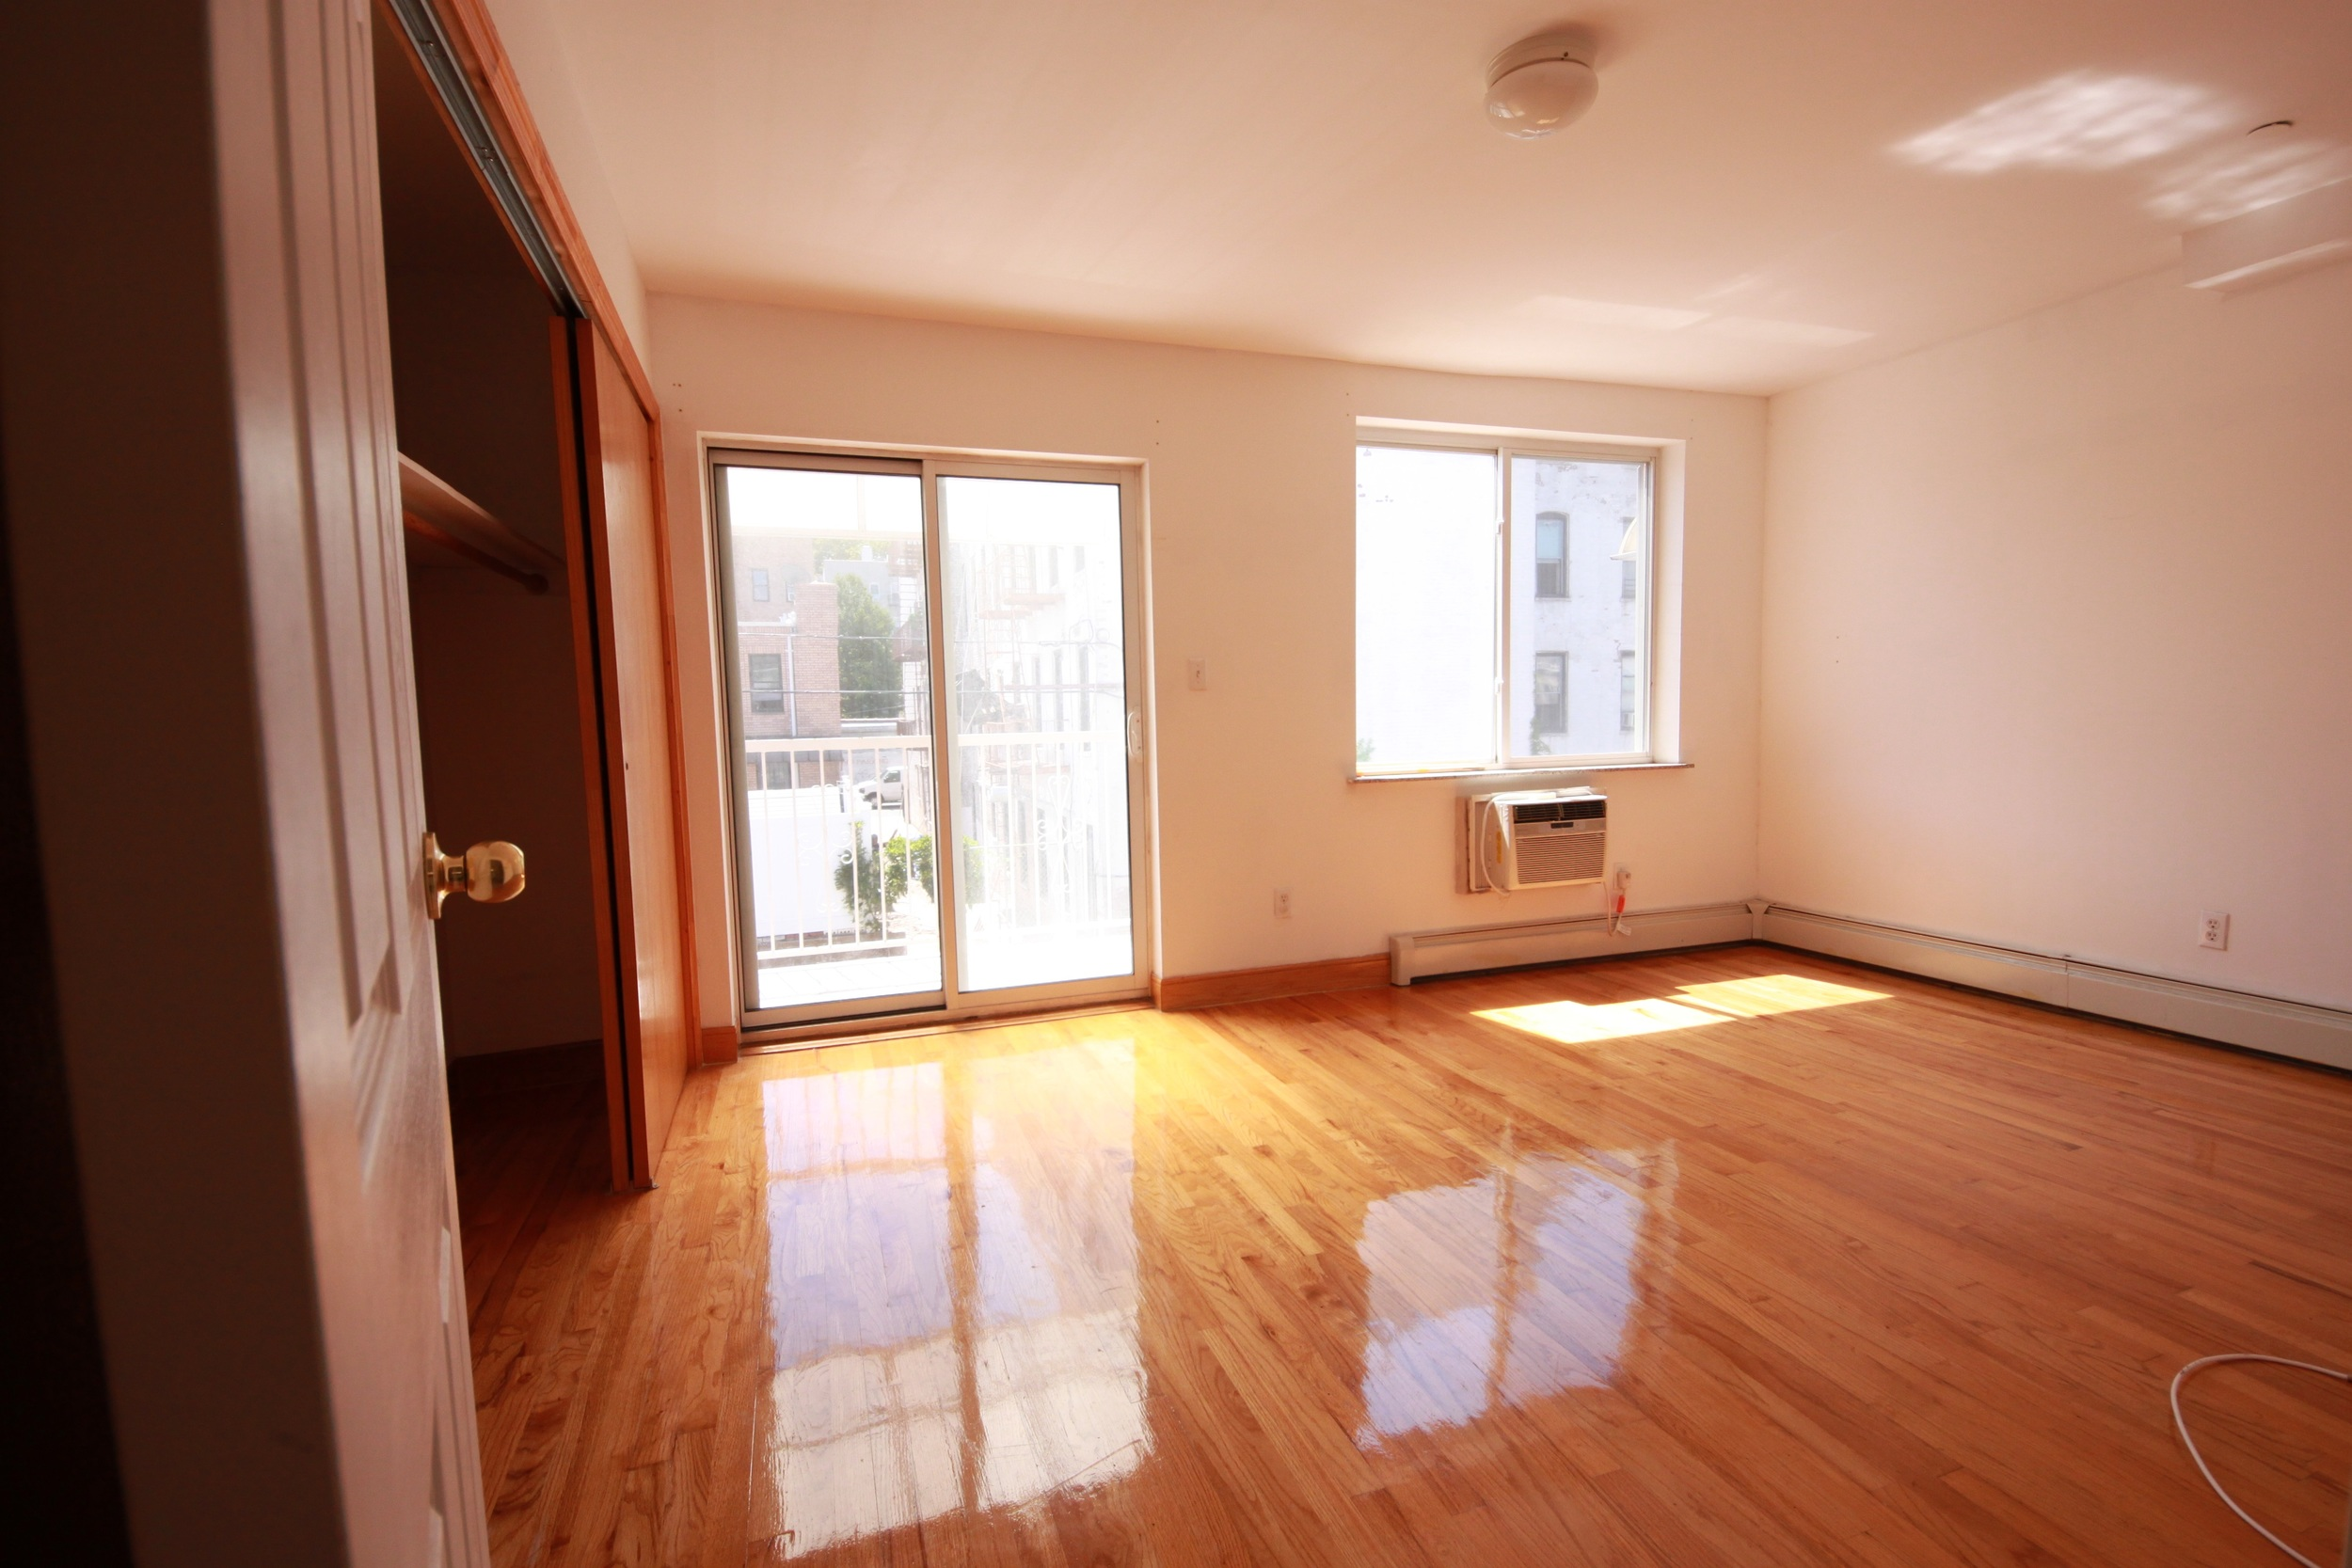 602 39th St, Apt 205 - 3 Bed/2 Bath in Sunset ParkRENTED - $2200/month